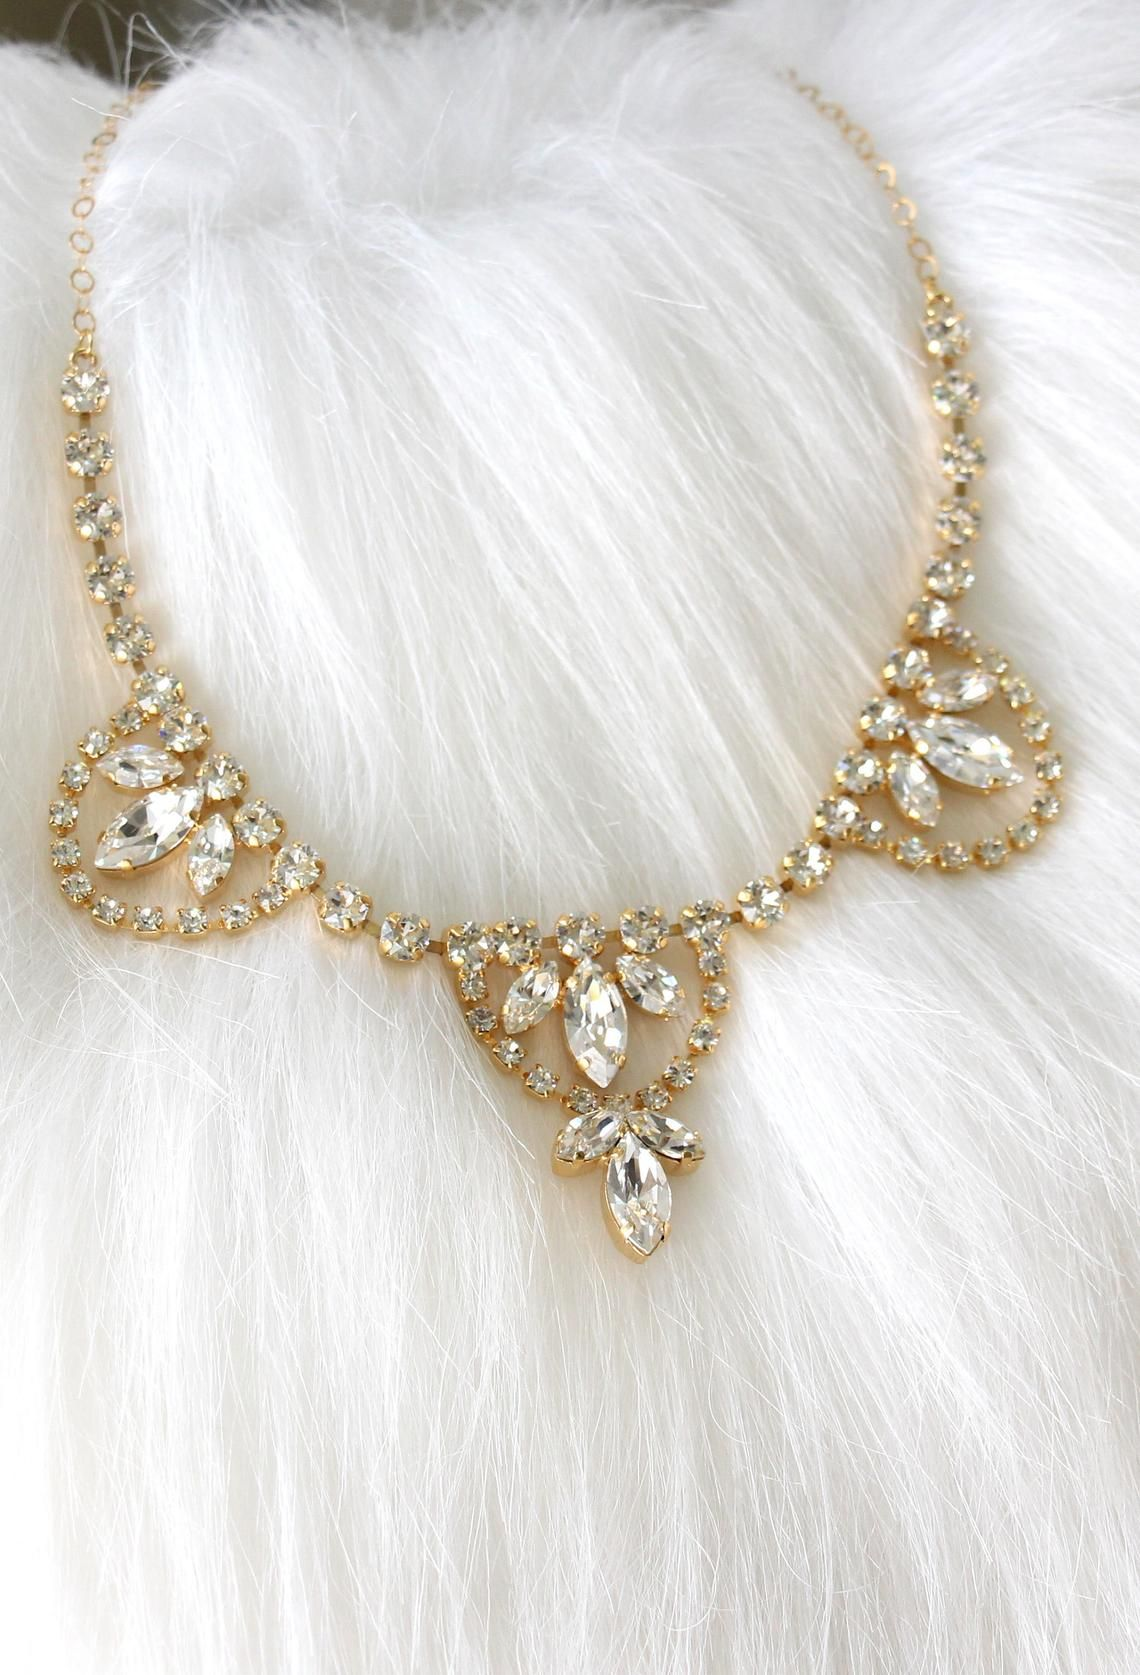 Choker Necklace Bridal Choker Necklace Swarovski Necklace  cc4ba124c